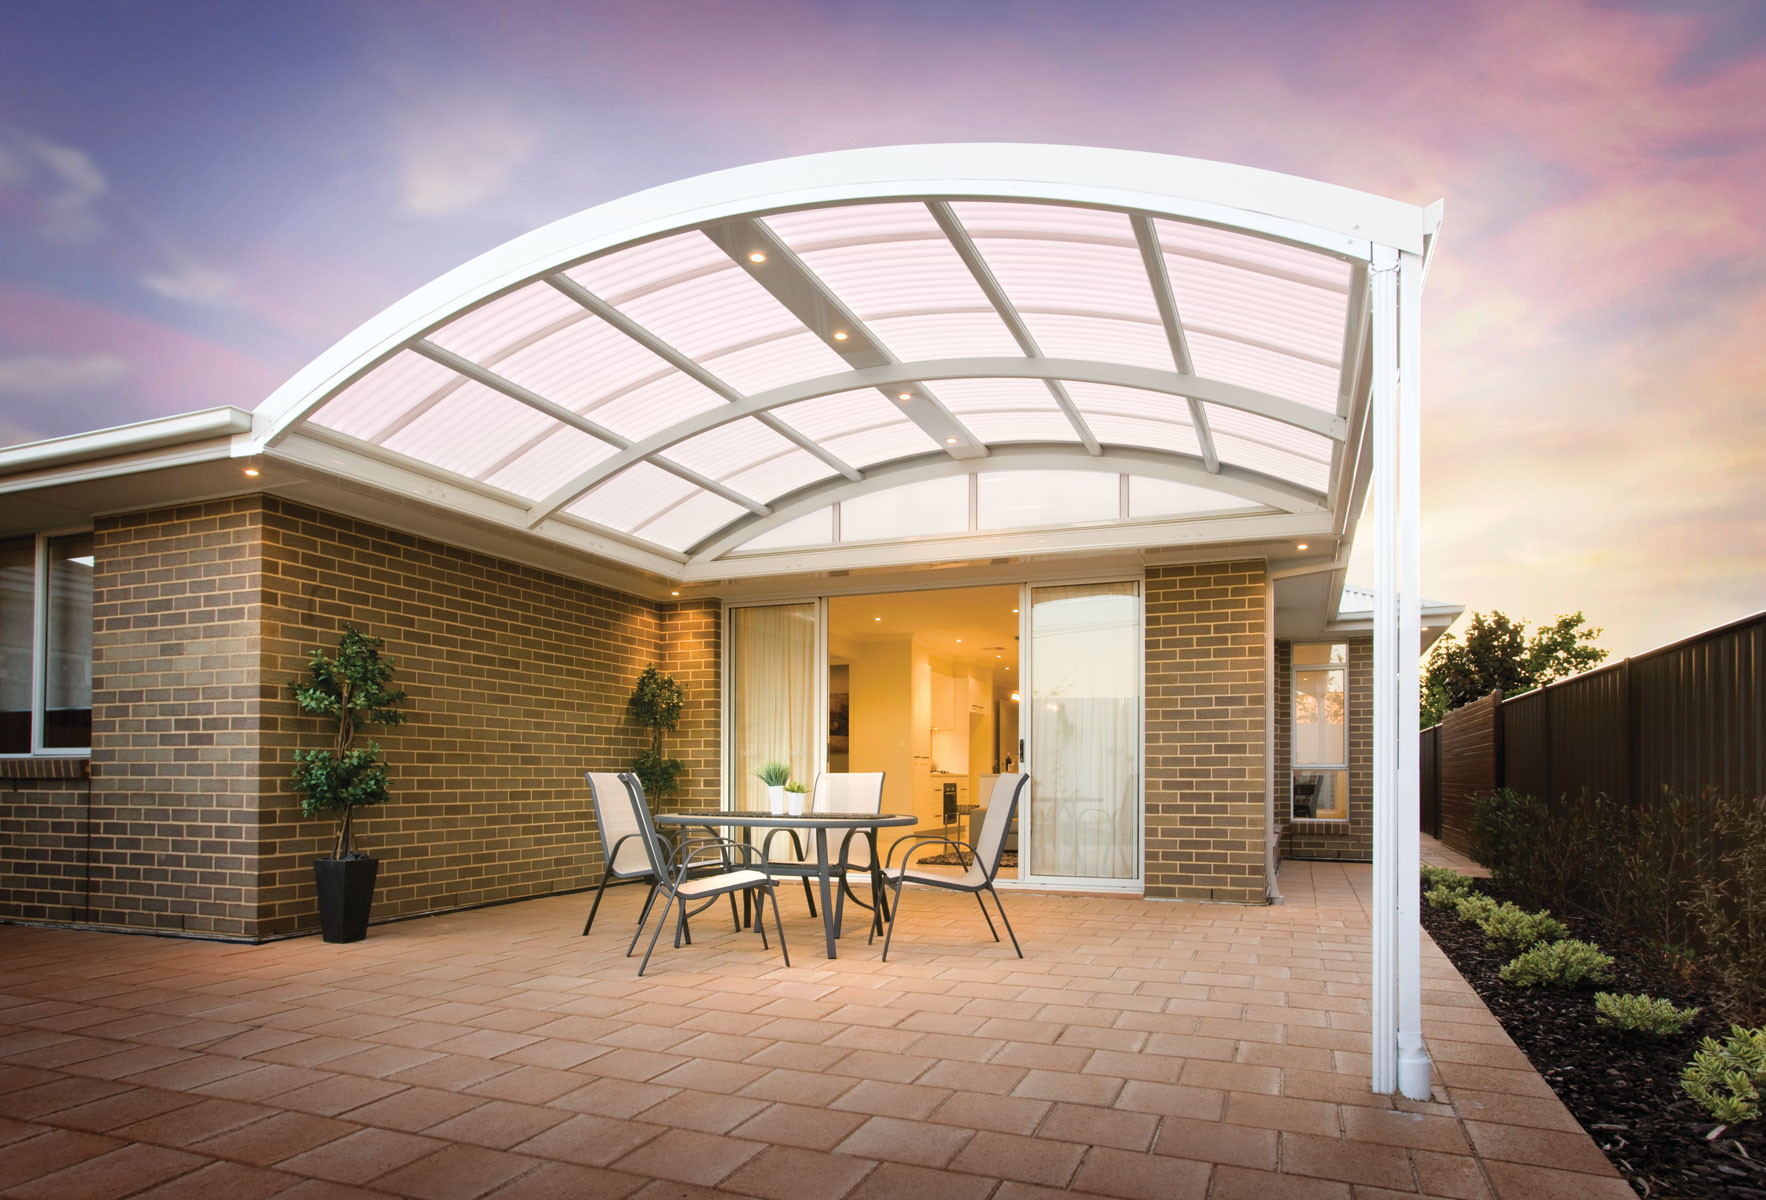 Curved Roof Patios in Melbourne - Undercover Concepts on Curved Patio Ideas id=53770